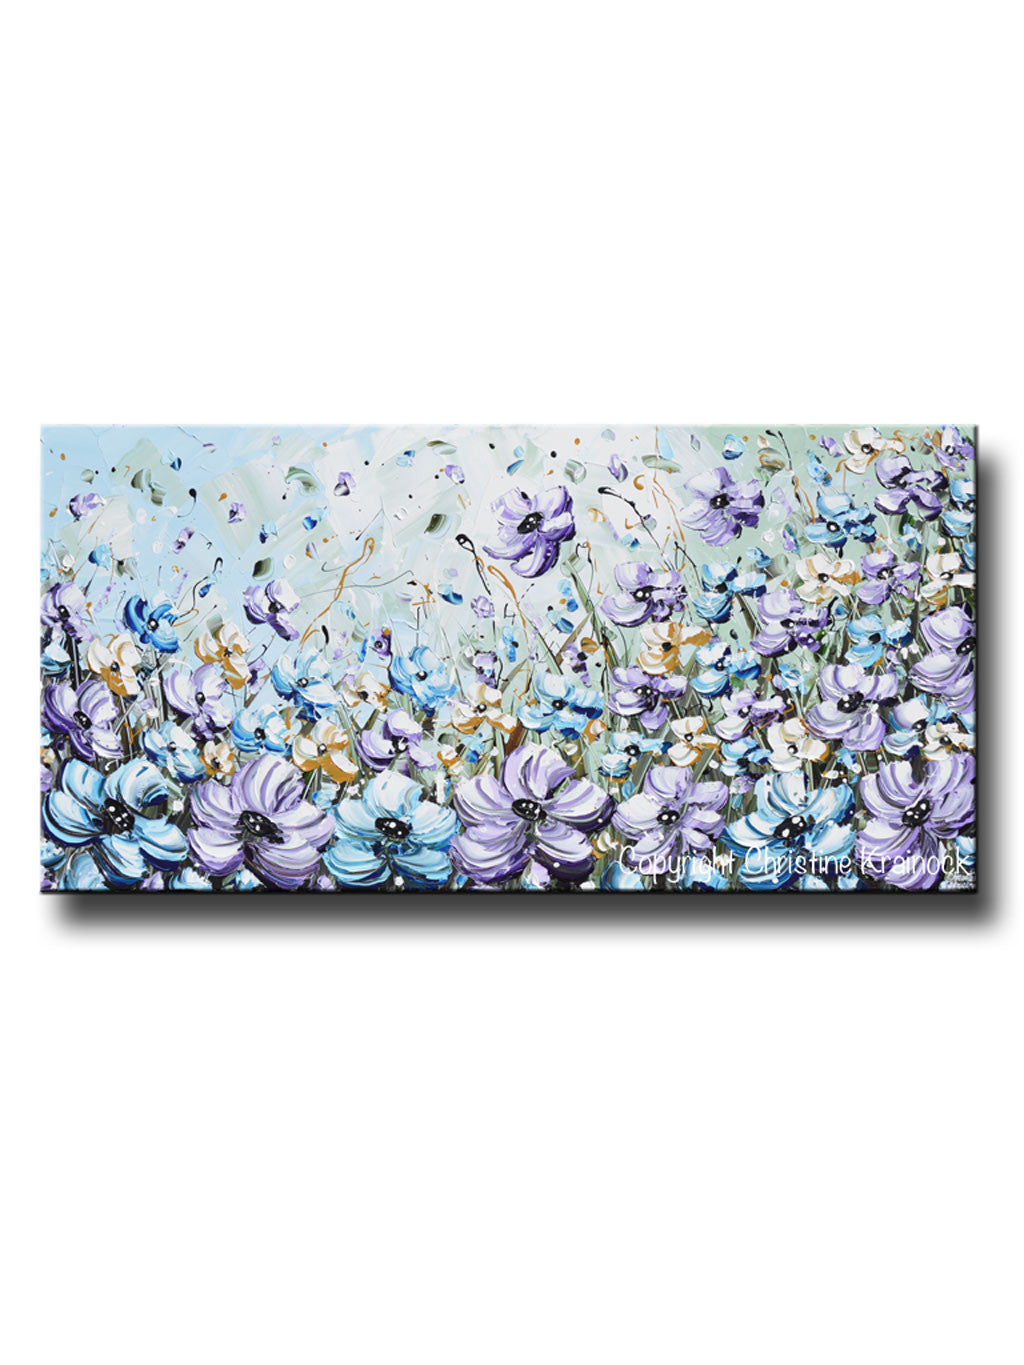 Giclee print art abstract painting purple blue flowers poppies mint gr contemporary art by - Light blue and mint green ...